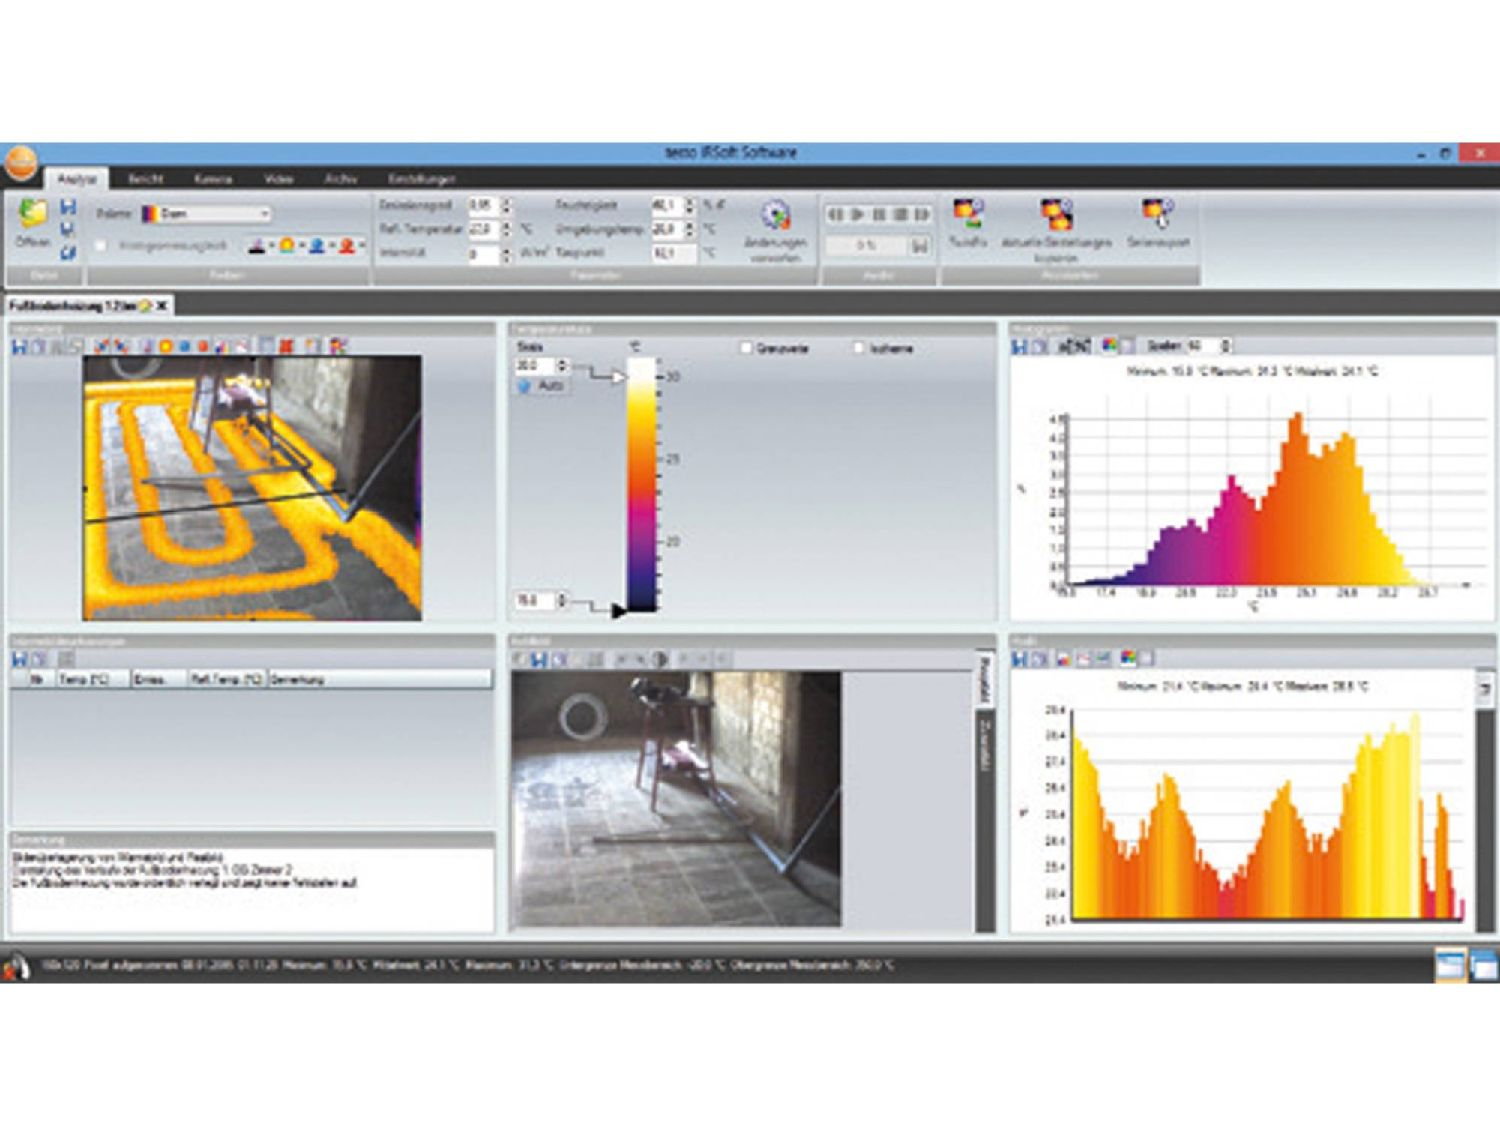 thermography-software-testo-IRSoft-twin-pix-2000x1500.jpg